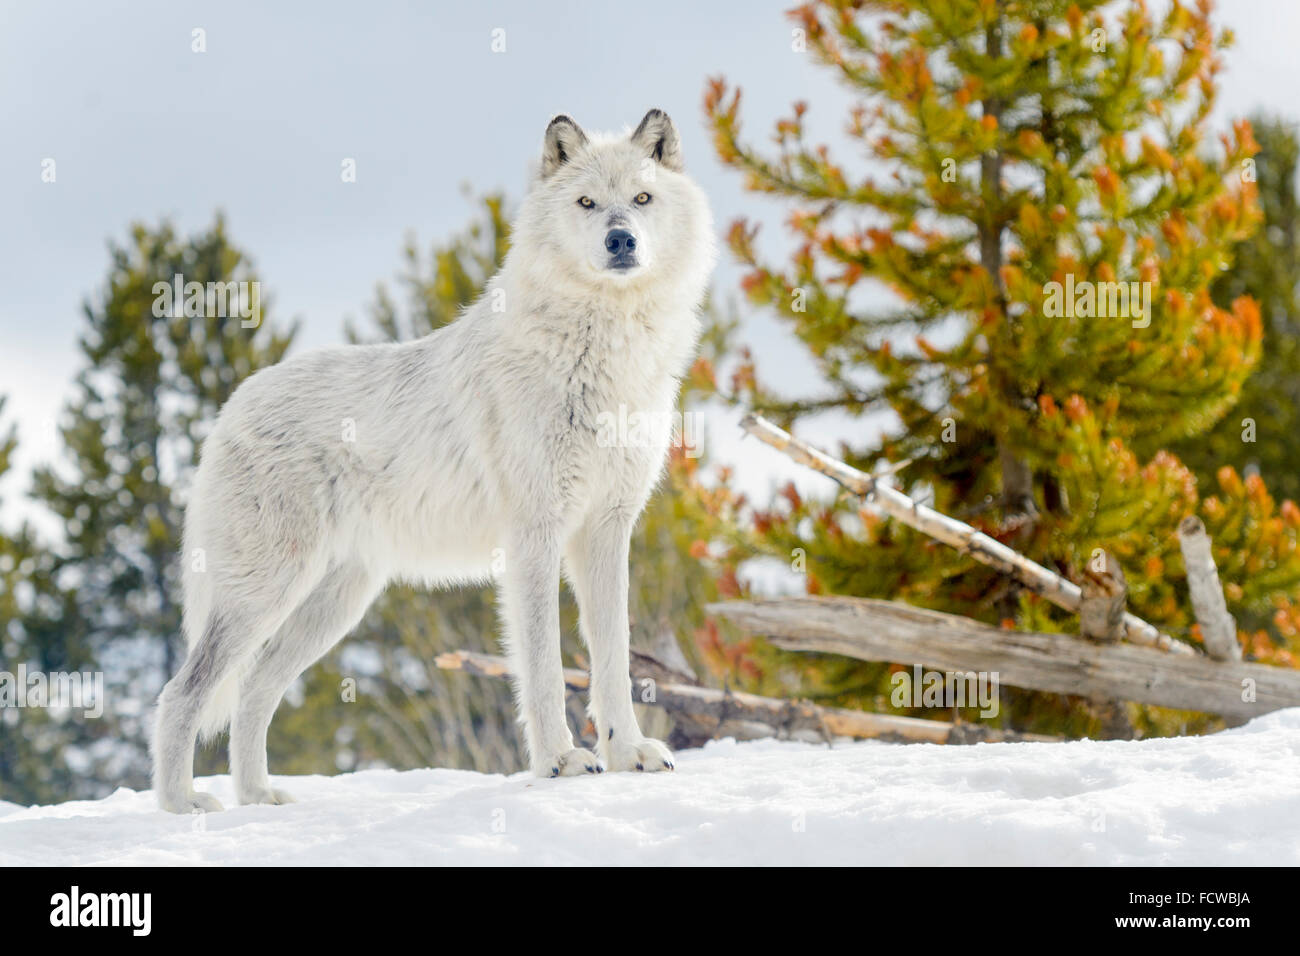 Gray Wolf (Canis lupus) standing in snow, looking at camera, captive, Yellowstone. - Stock Image